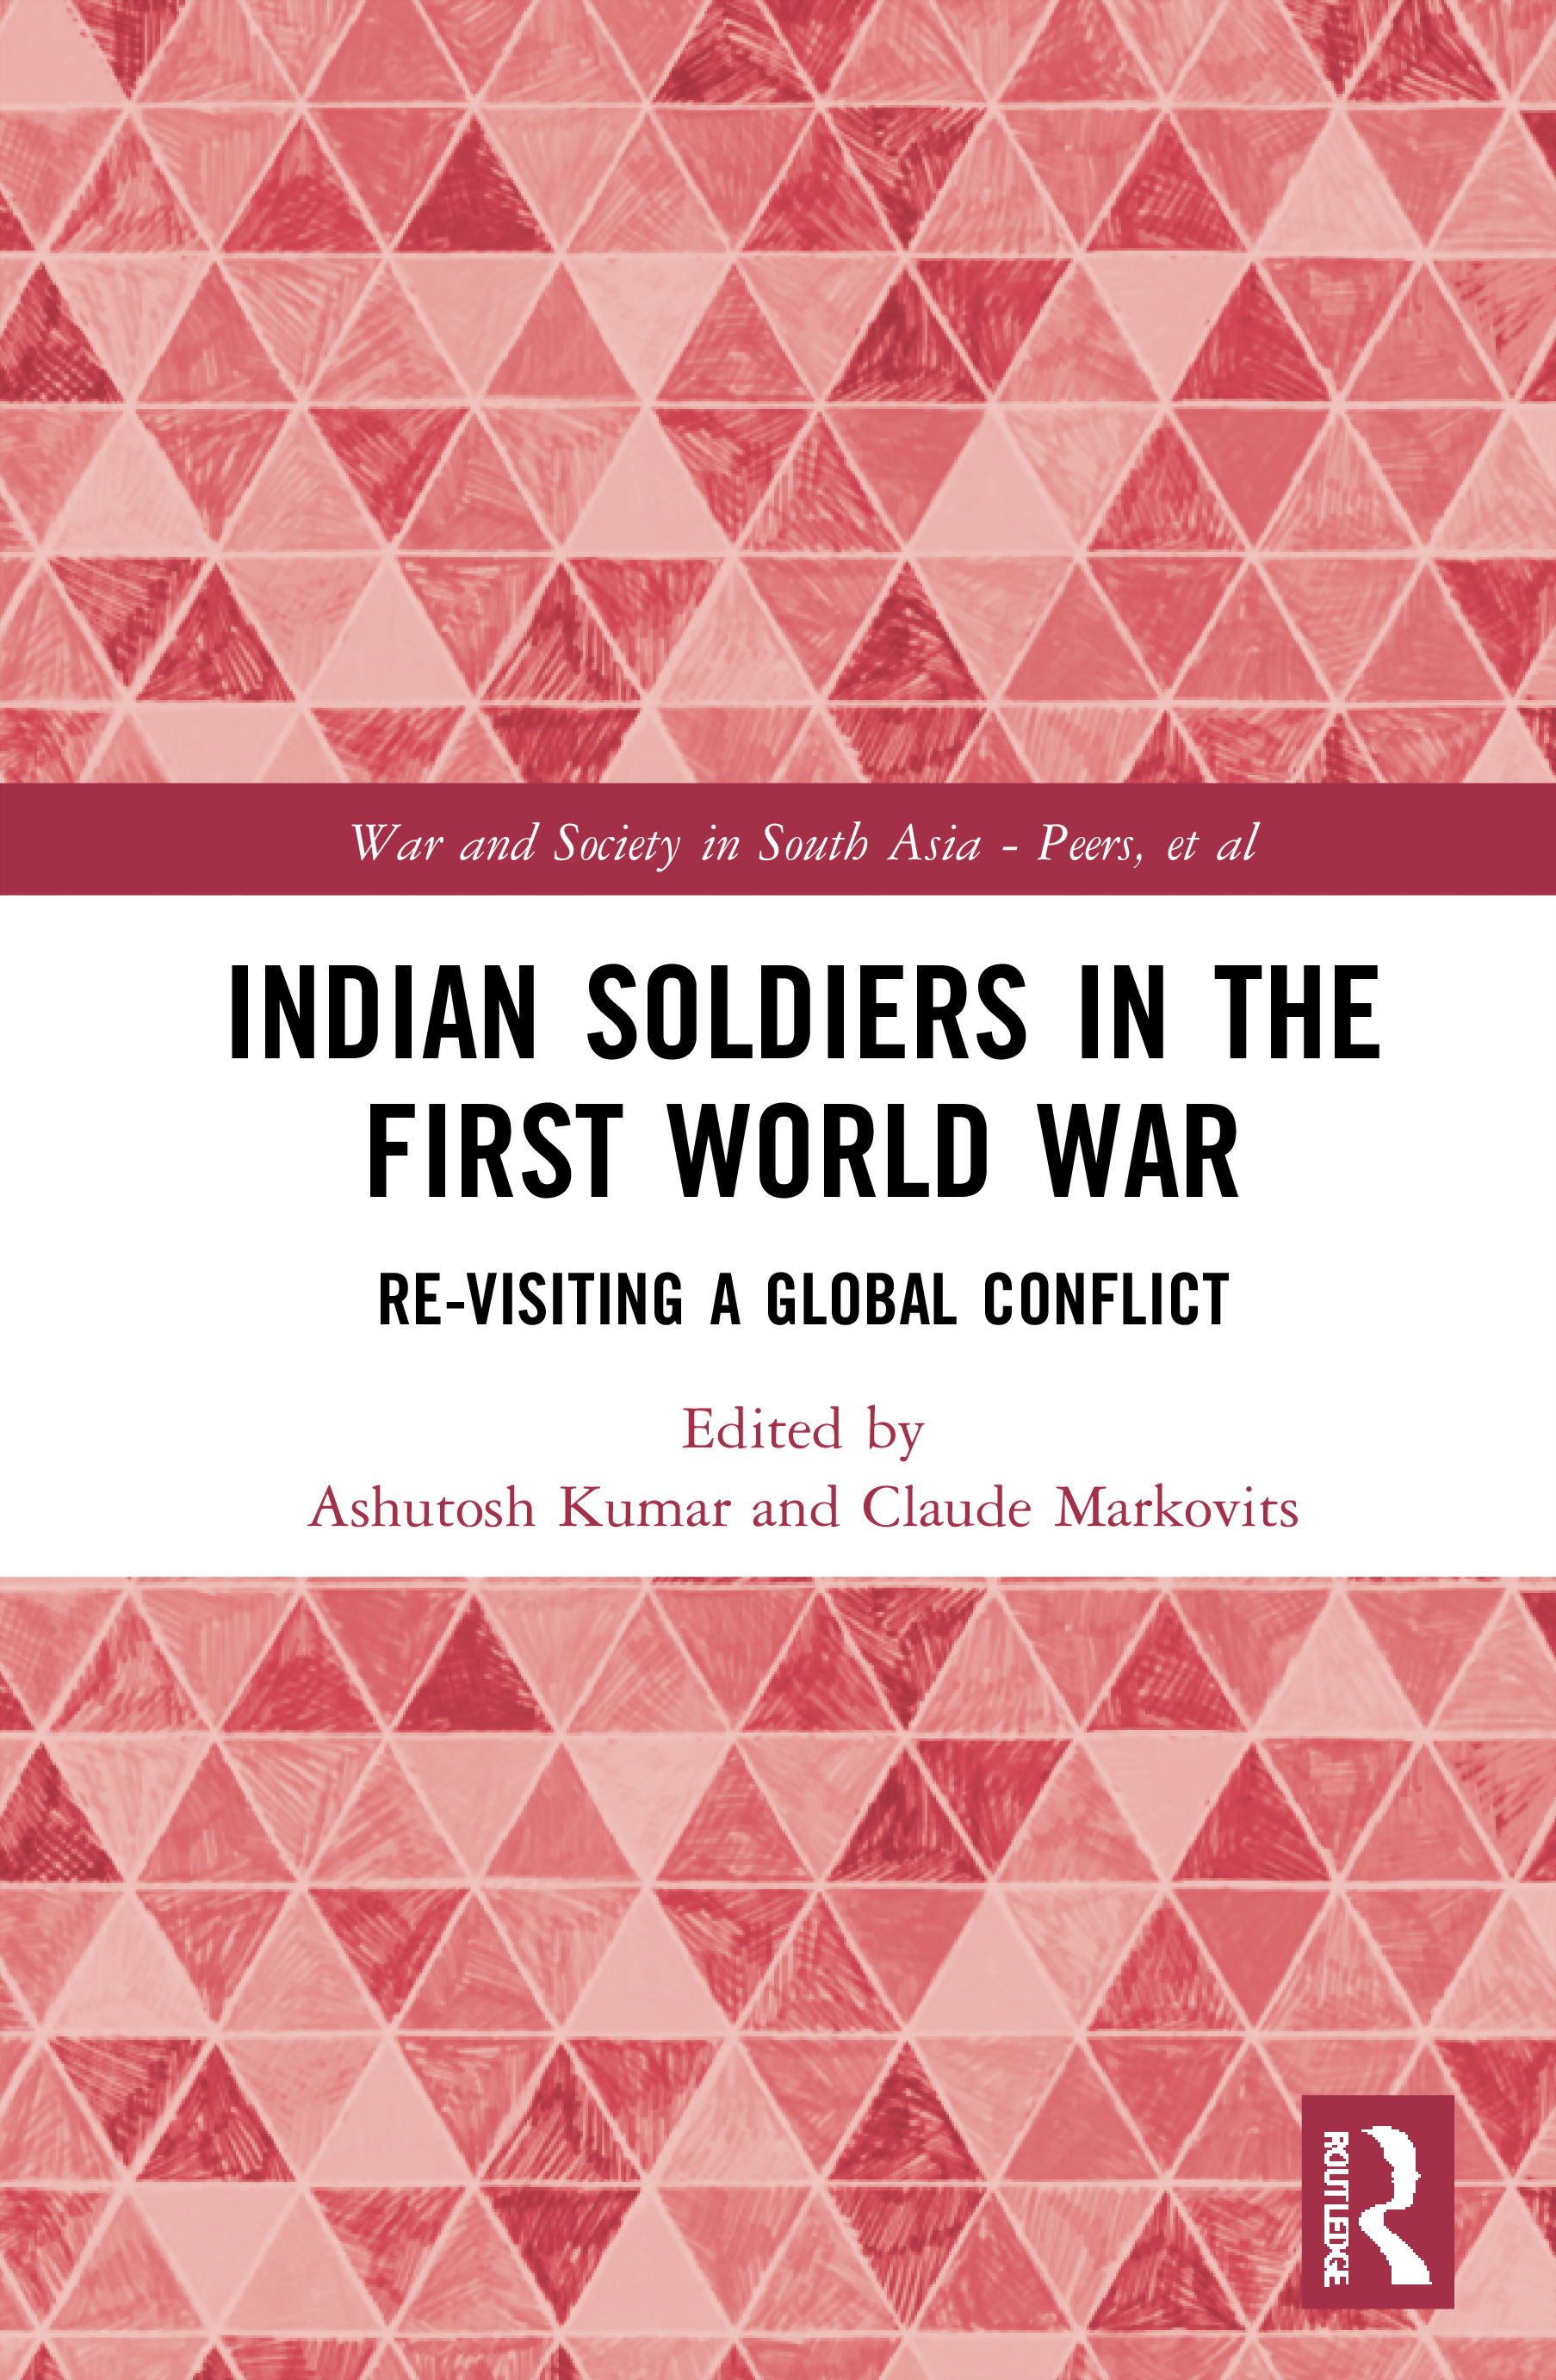 Indian Soldiers in the First World War